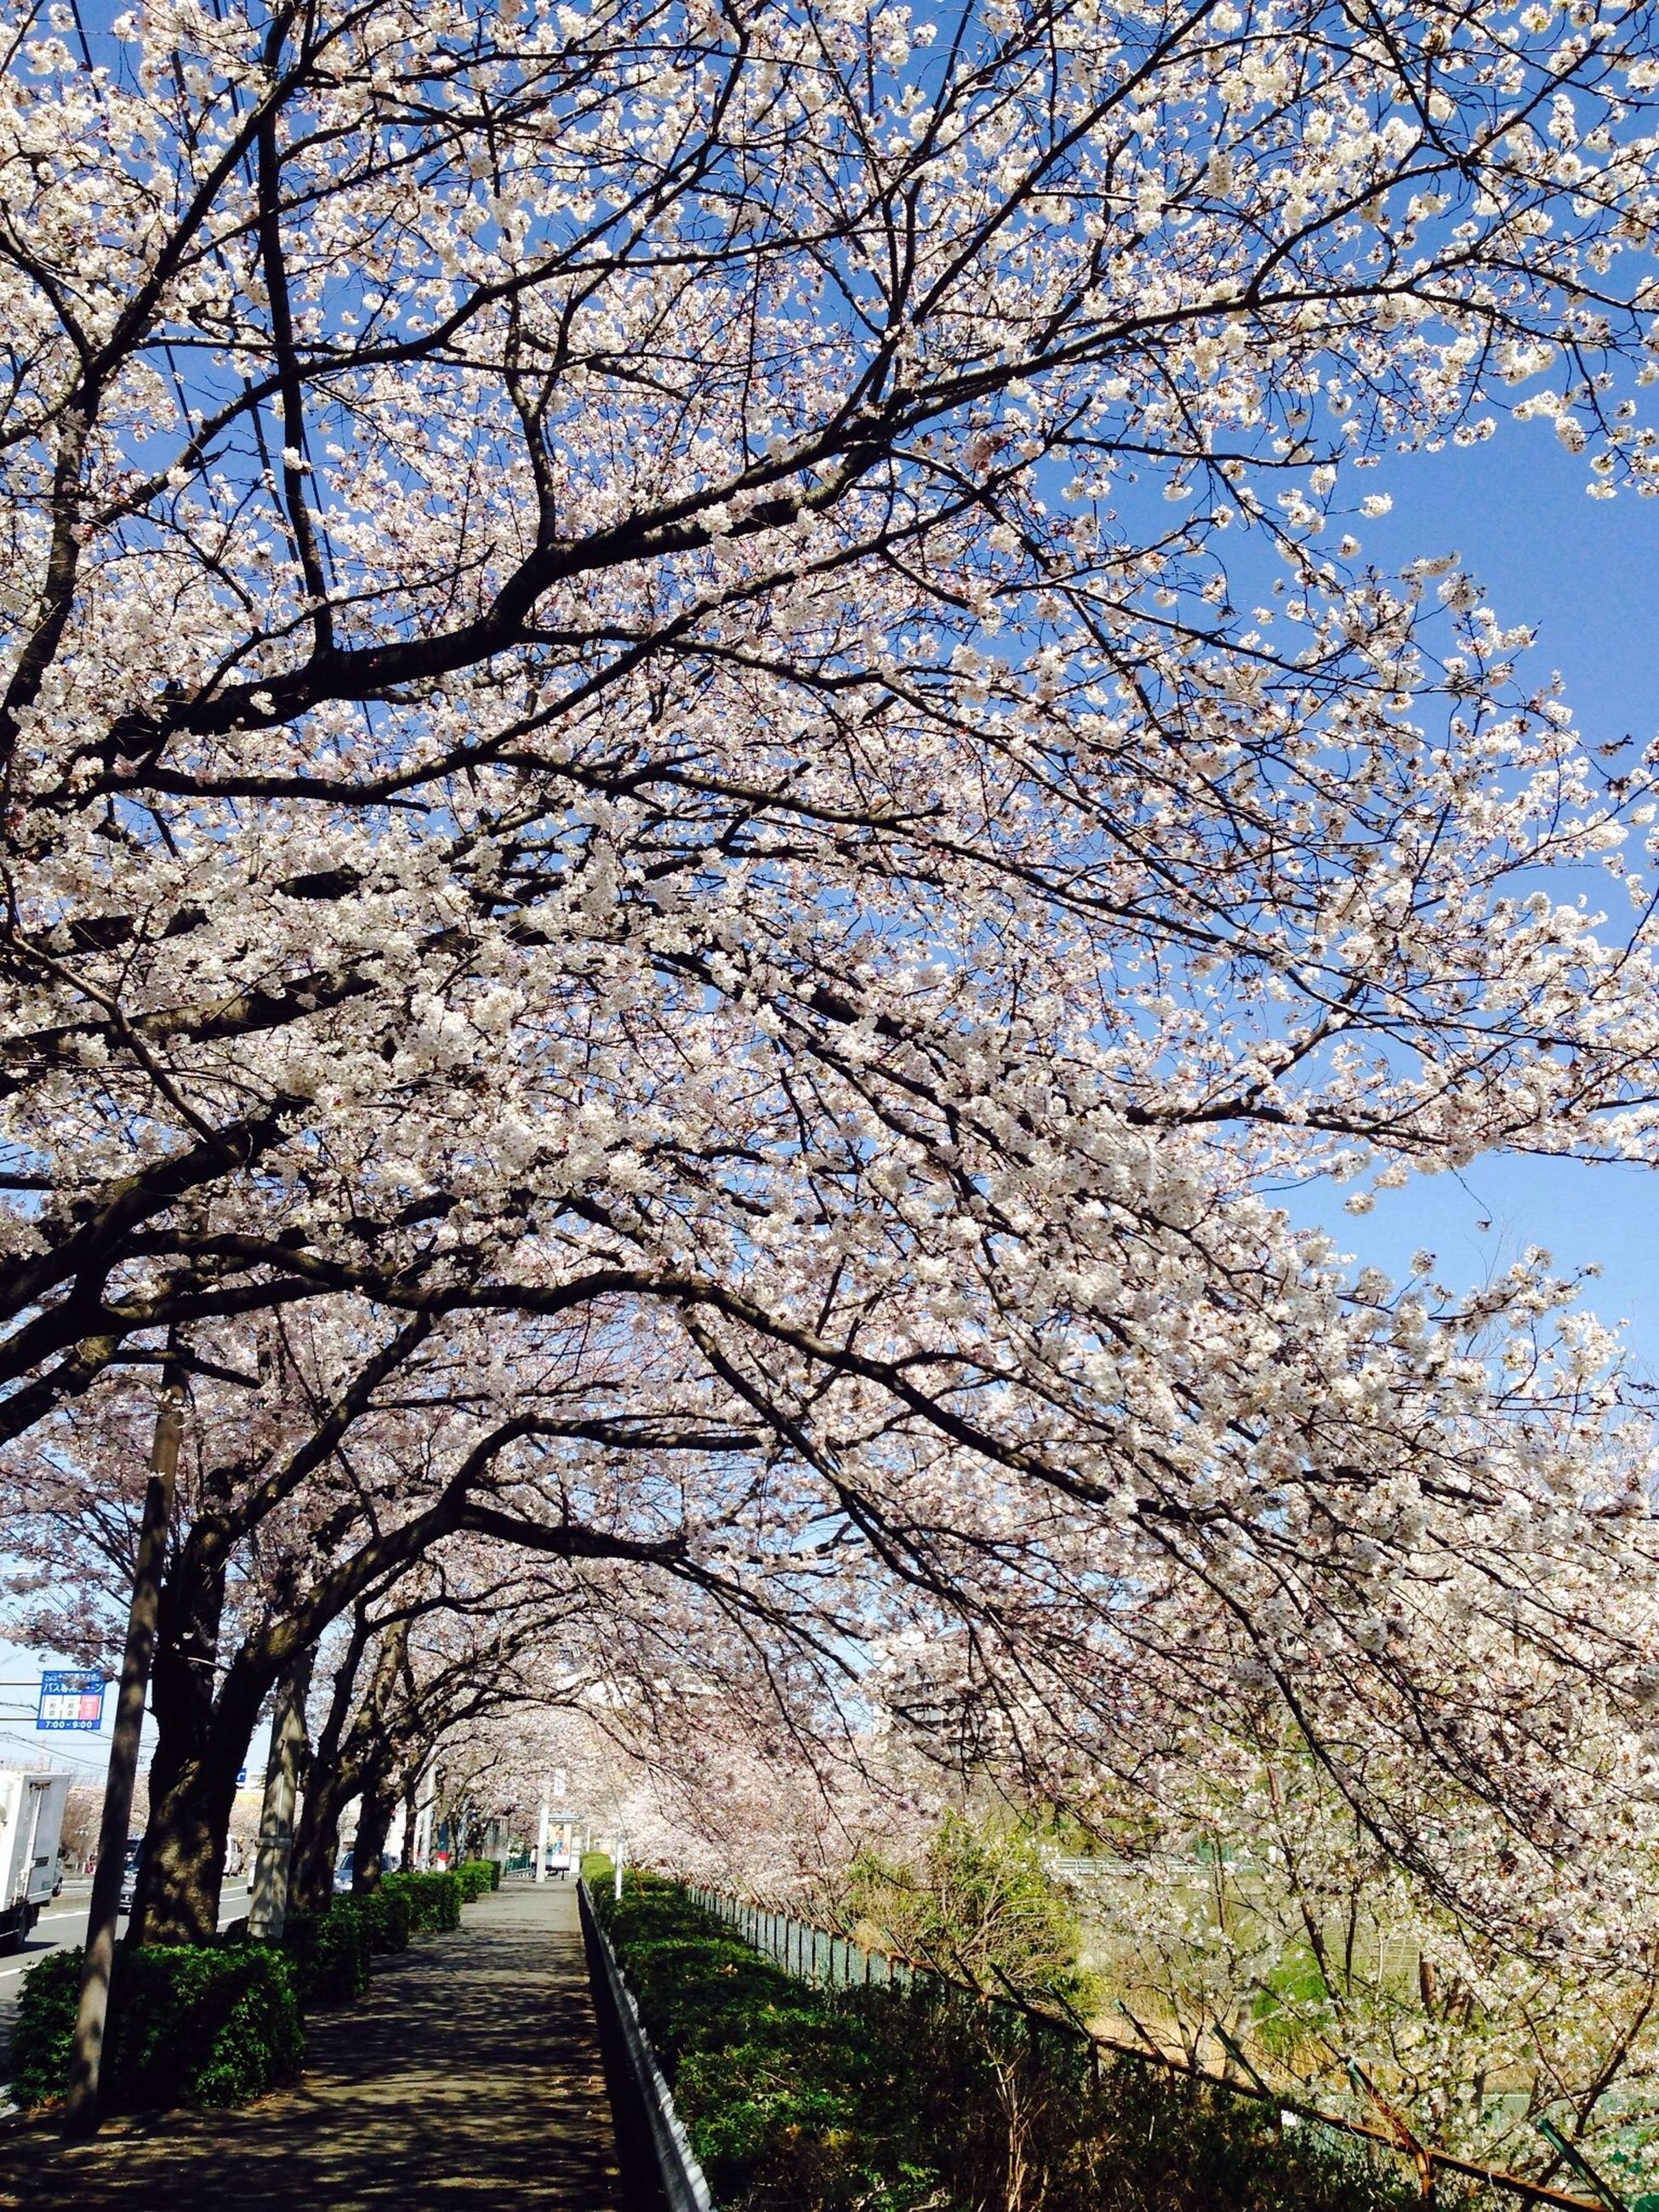 tree, branch, bare tree, growth, sky, low angle view, flower, nature, built structure, sunlight, day, beauty in nature, the way forward, architecture, tranquility, clear sky, outdoors, no people, blossom, cherry blossom